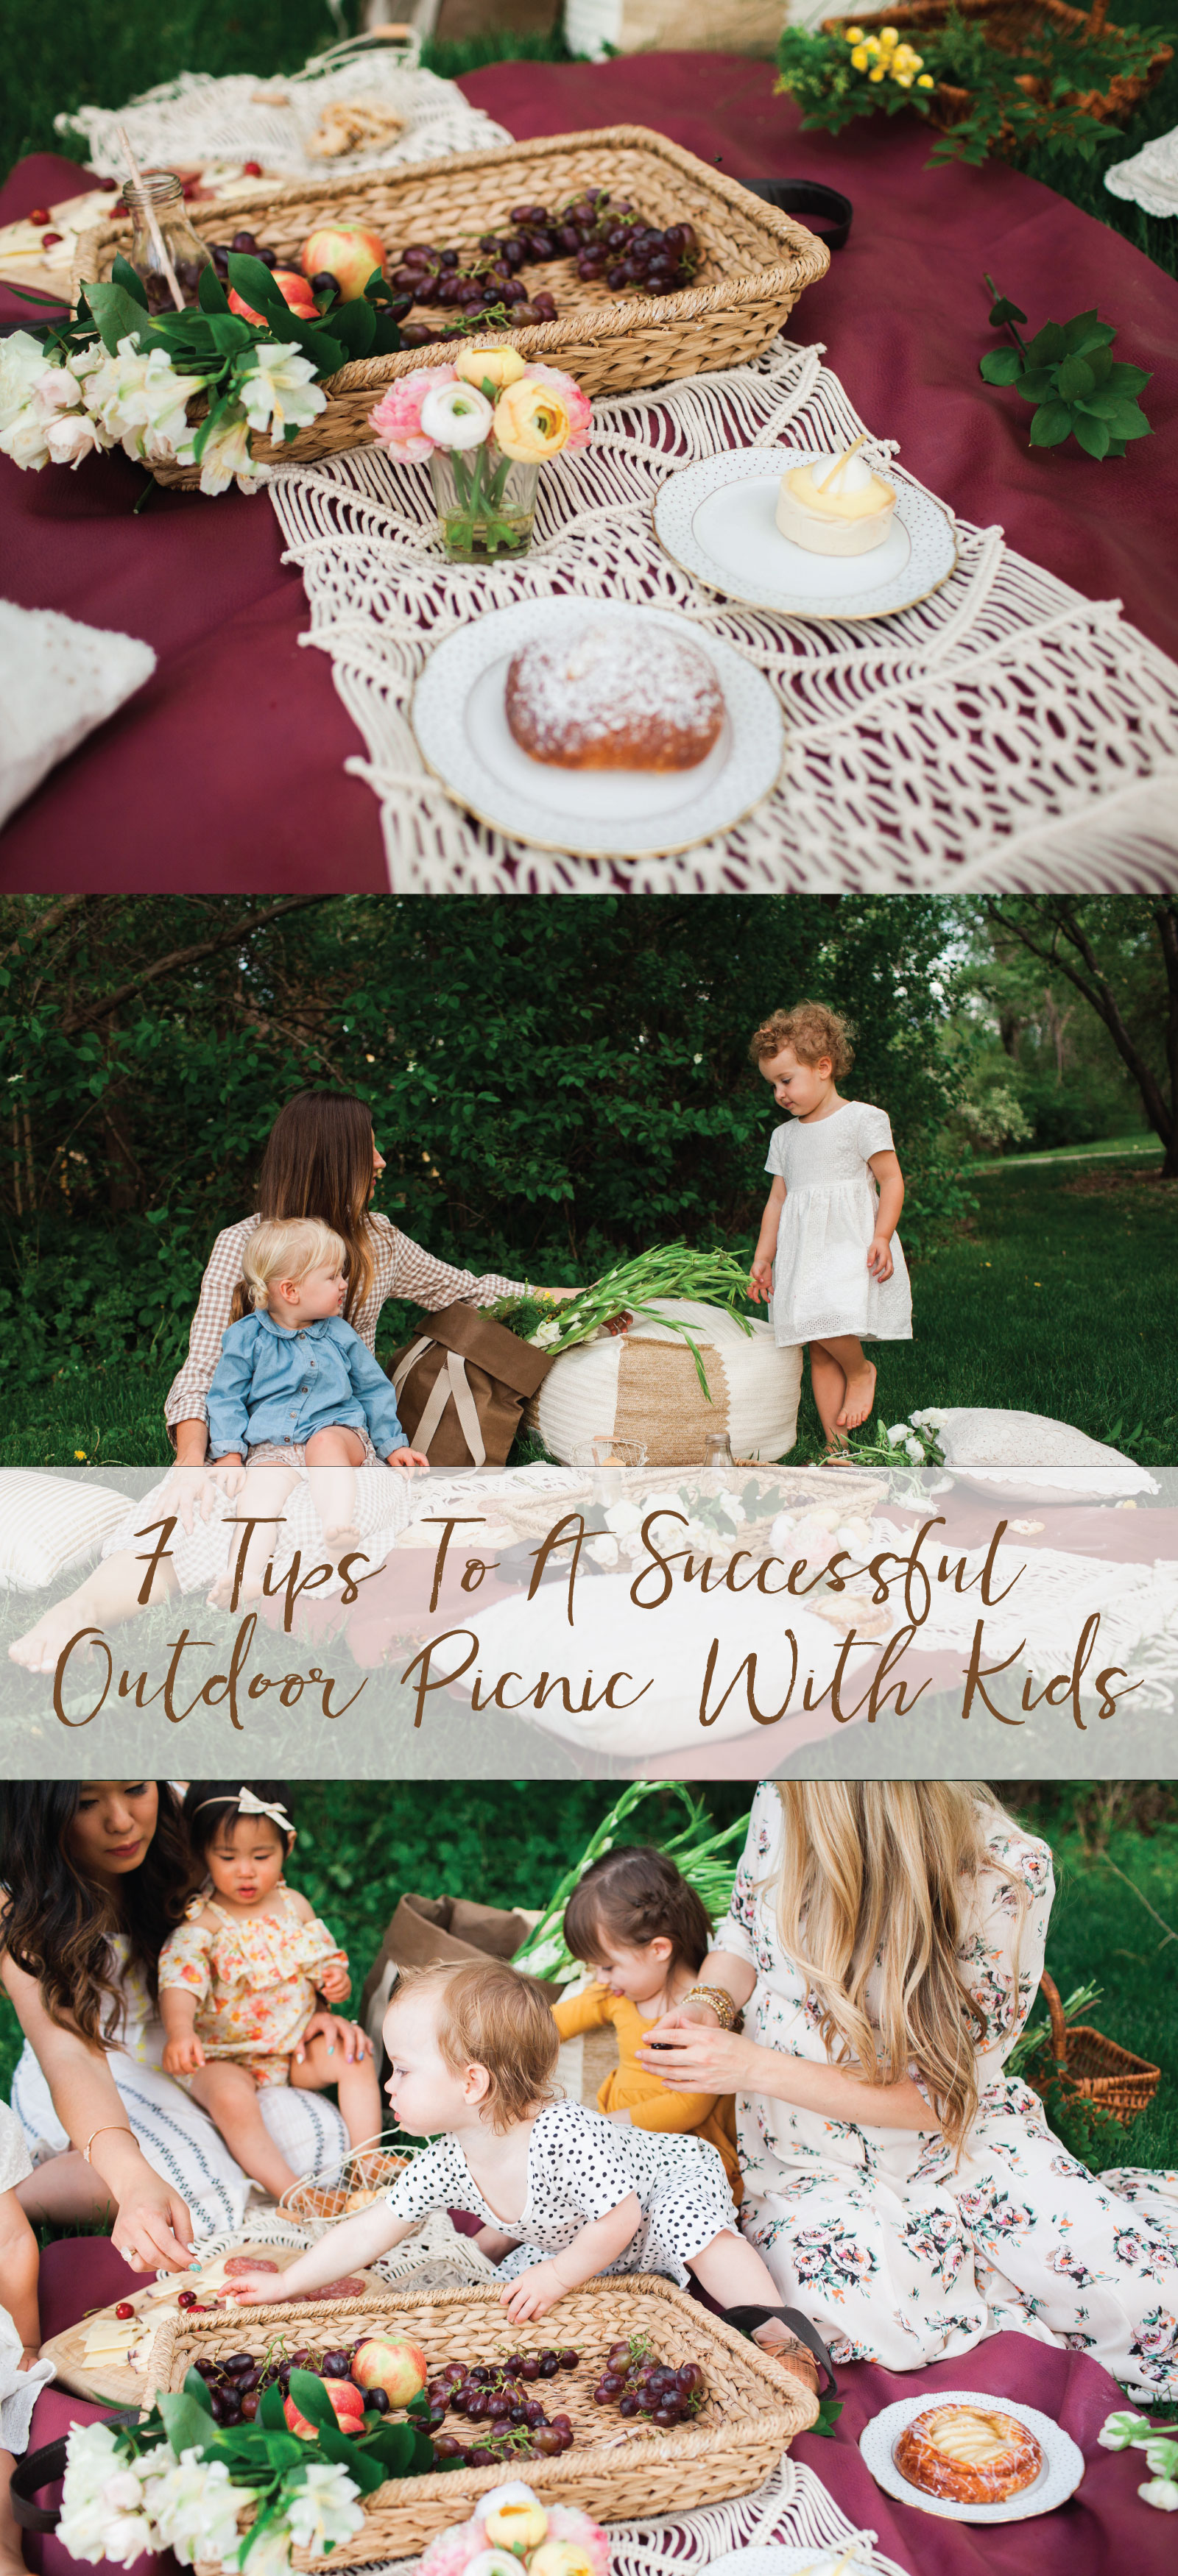 7 Tips To A Successful Outdoor Picnic With Kids